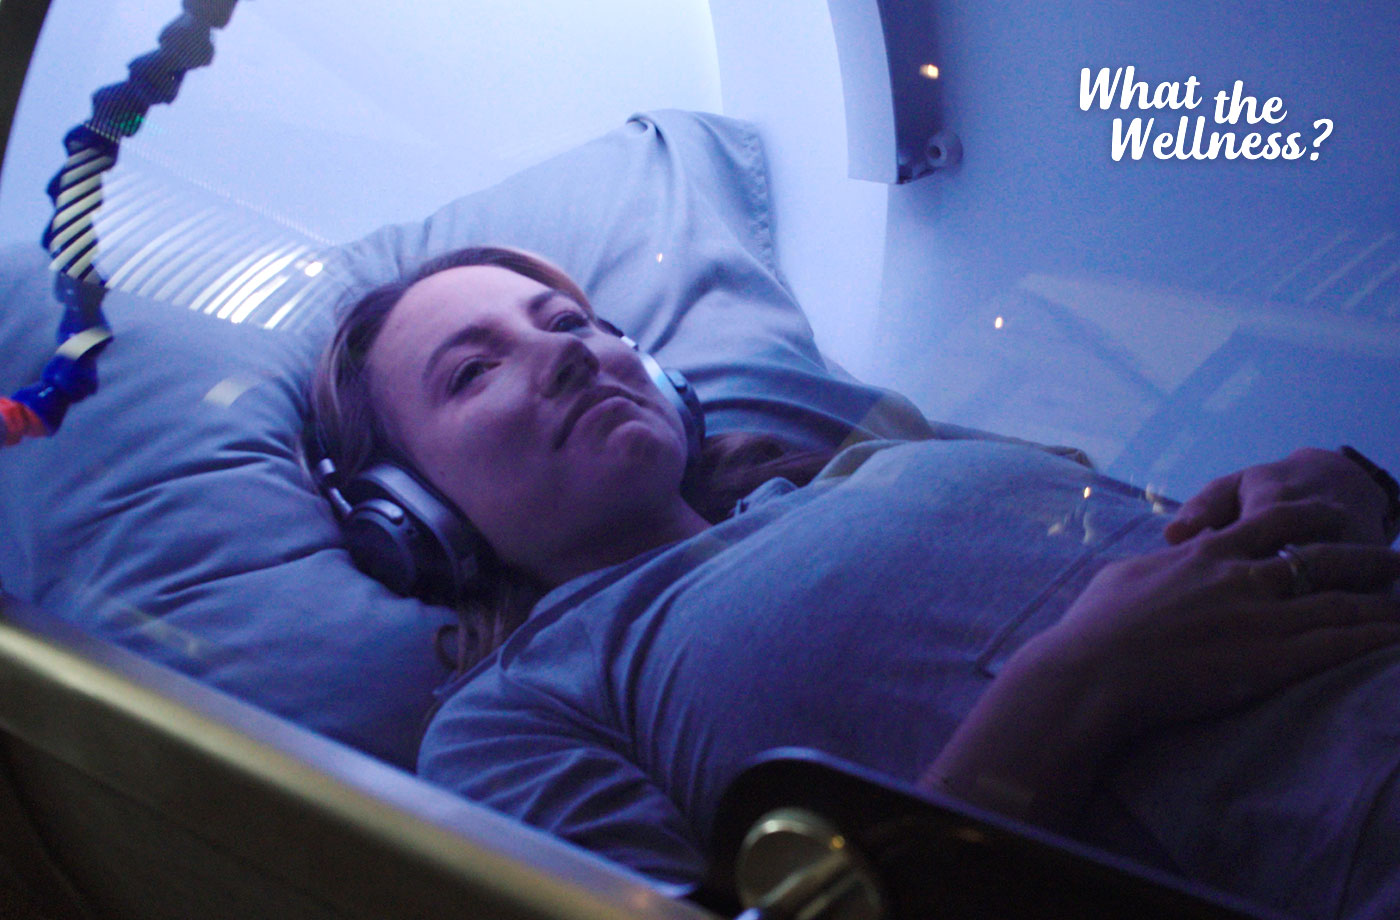 I Got Into a Hyperbaric Chamber to Speed up the Healing Process—Here's What Happened